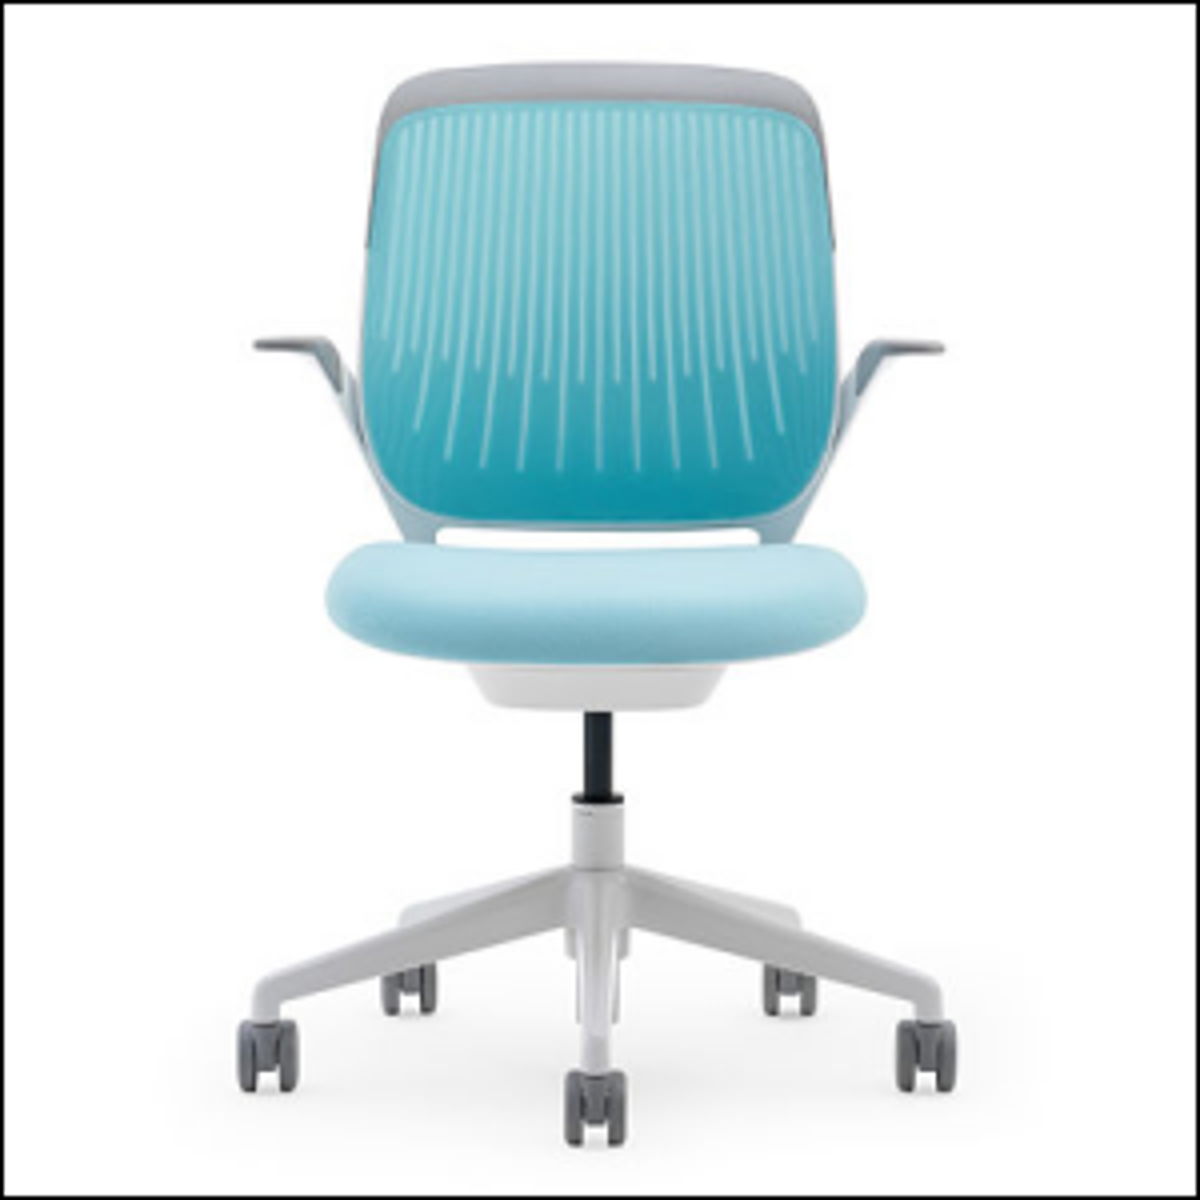 Photo of a modern day swivel office chair.